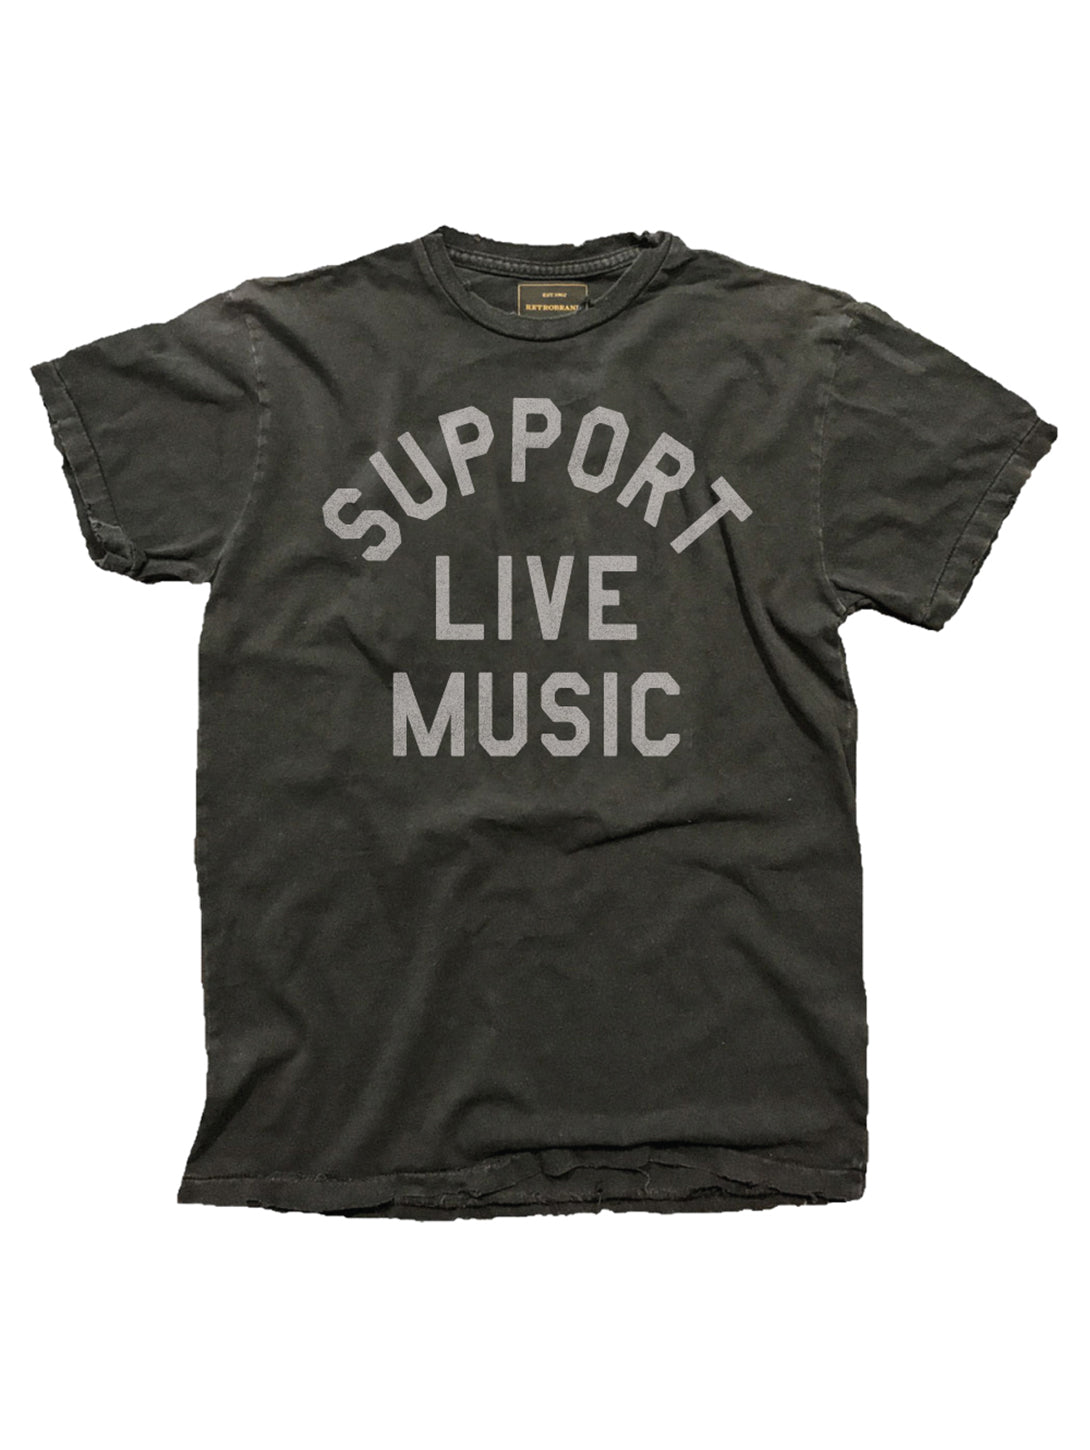 Support Live Music T-Shirt-Retro Brand Black Label-Over the Rainbow